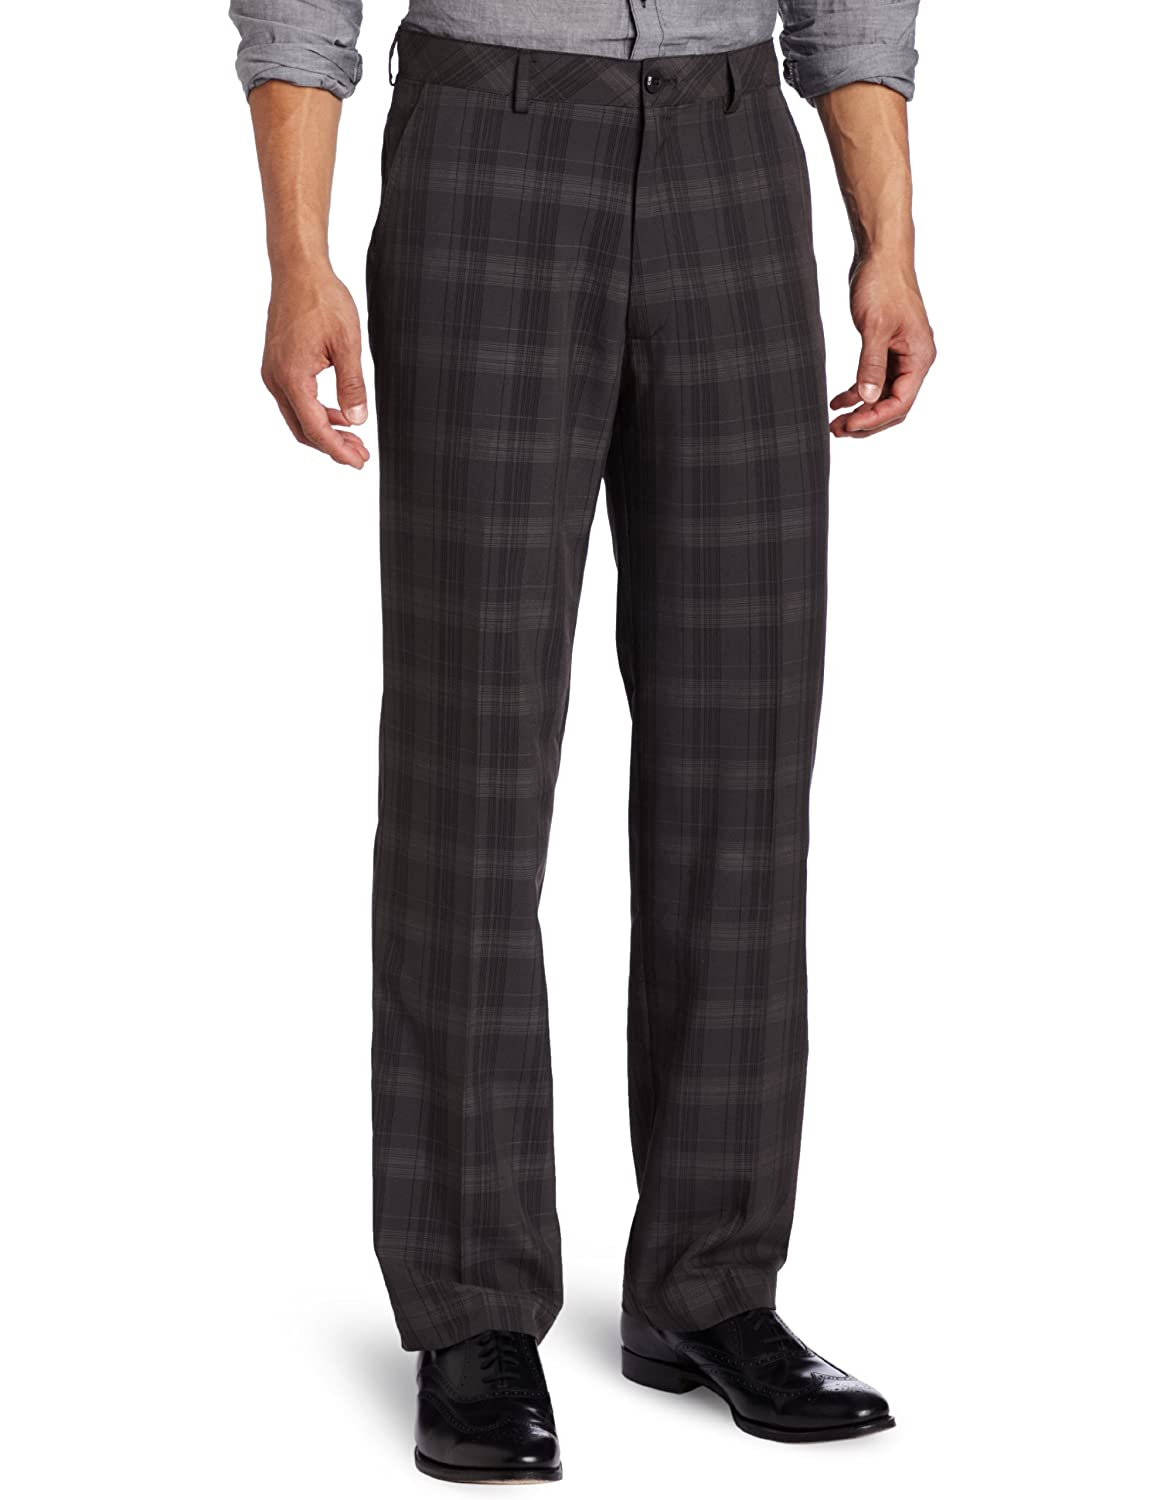 1930s Style Men's Pants Glen Plaid Straight Fit Flat Front Pant  AT vintagedancer.com